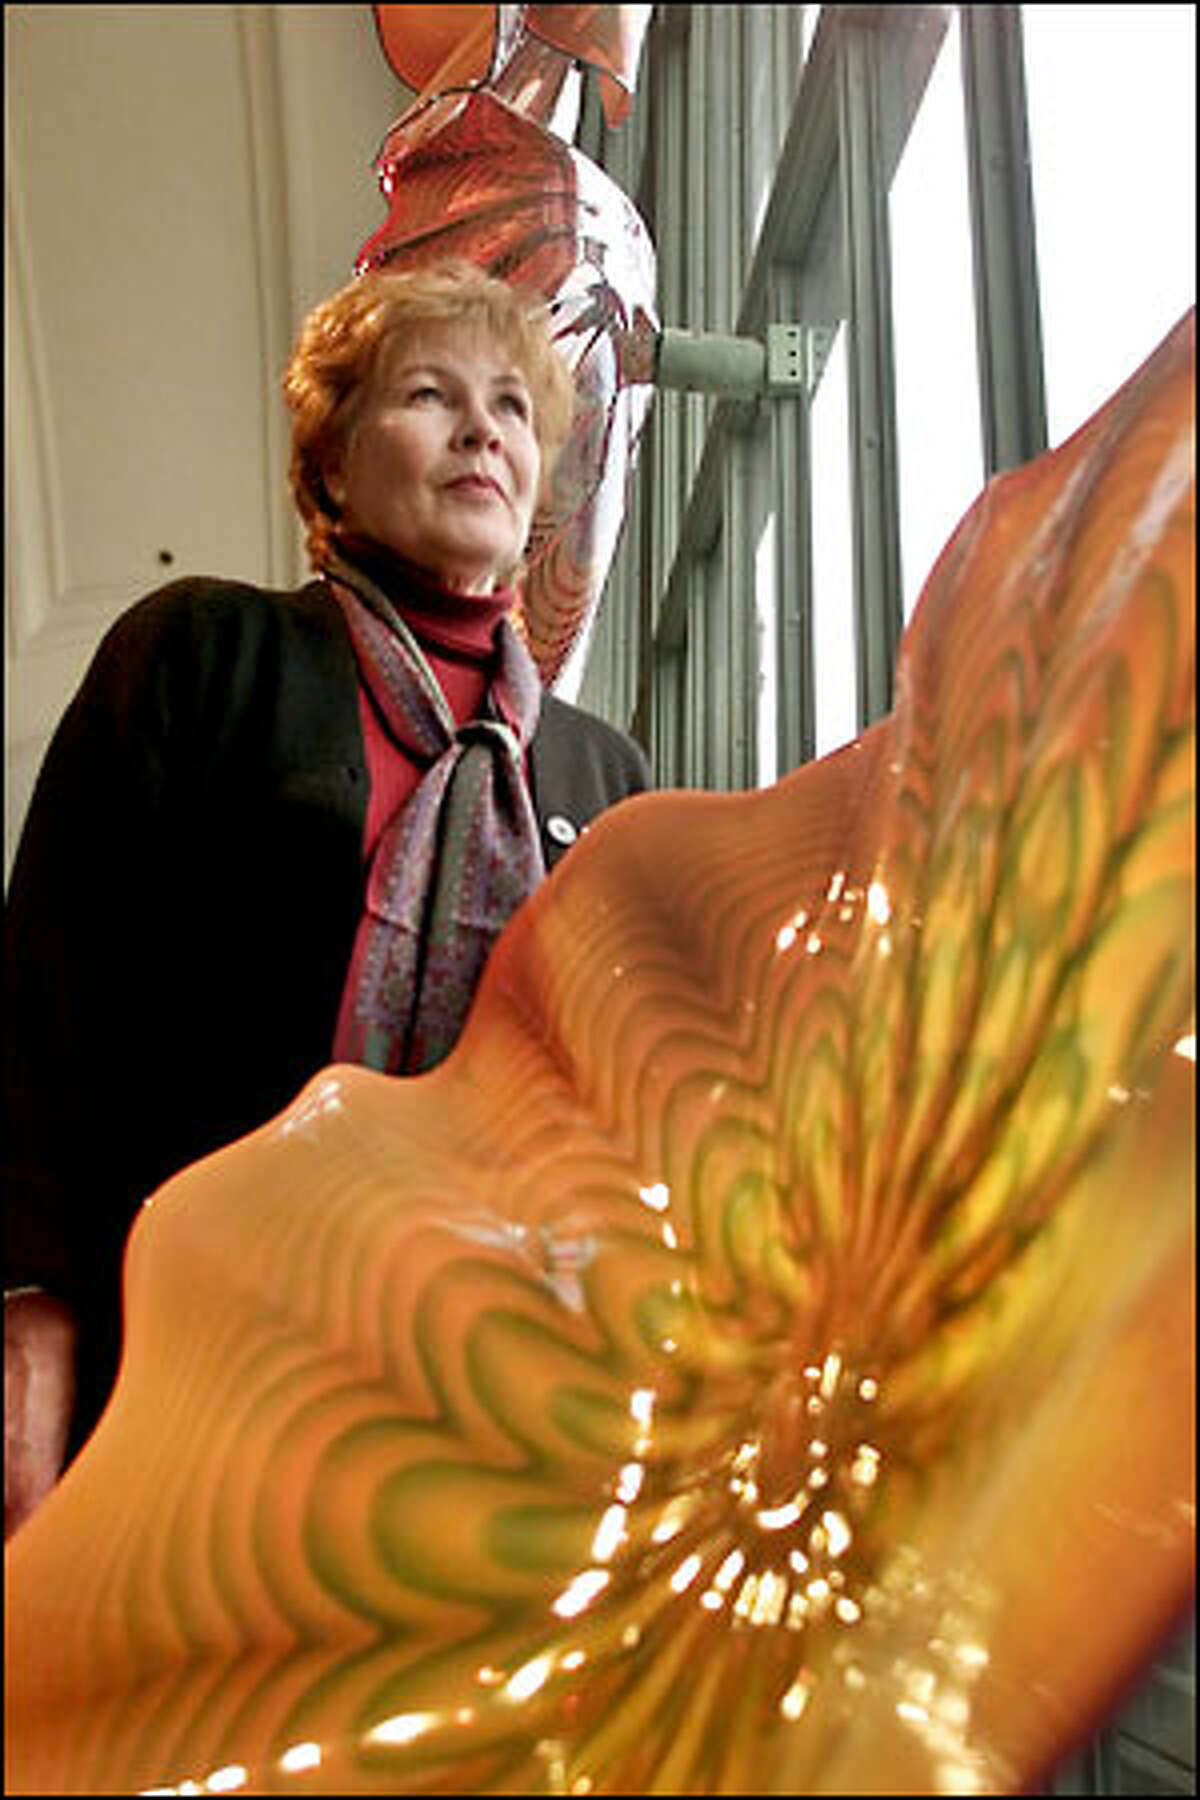 Bonnie Gallagher is the Arts Education director for the Chihuly display at Union Station in Tacoma. She was hoping those pieces survived the shaking.